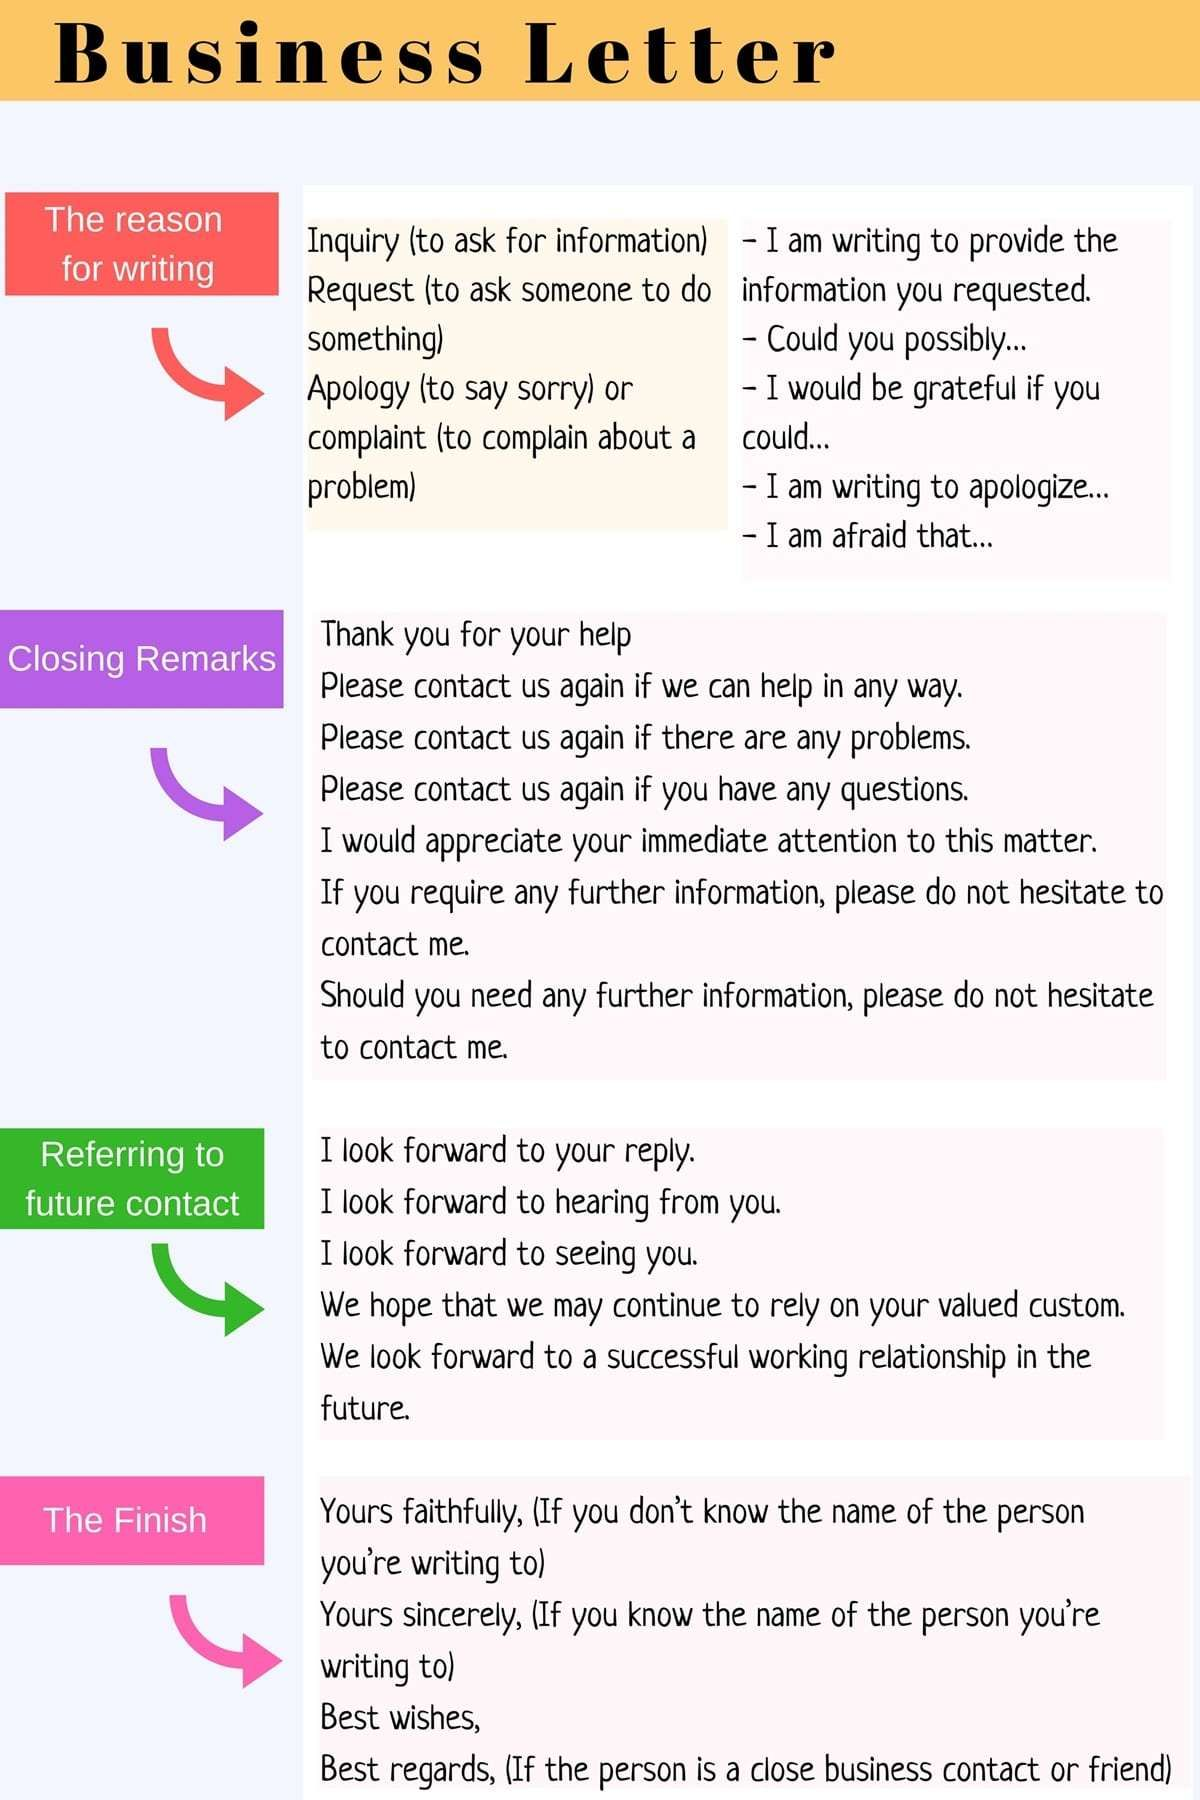 Inquiry Letter For Business Business Letter  Claudia  Pinterest  Business Letter English And .